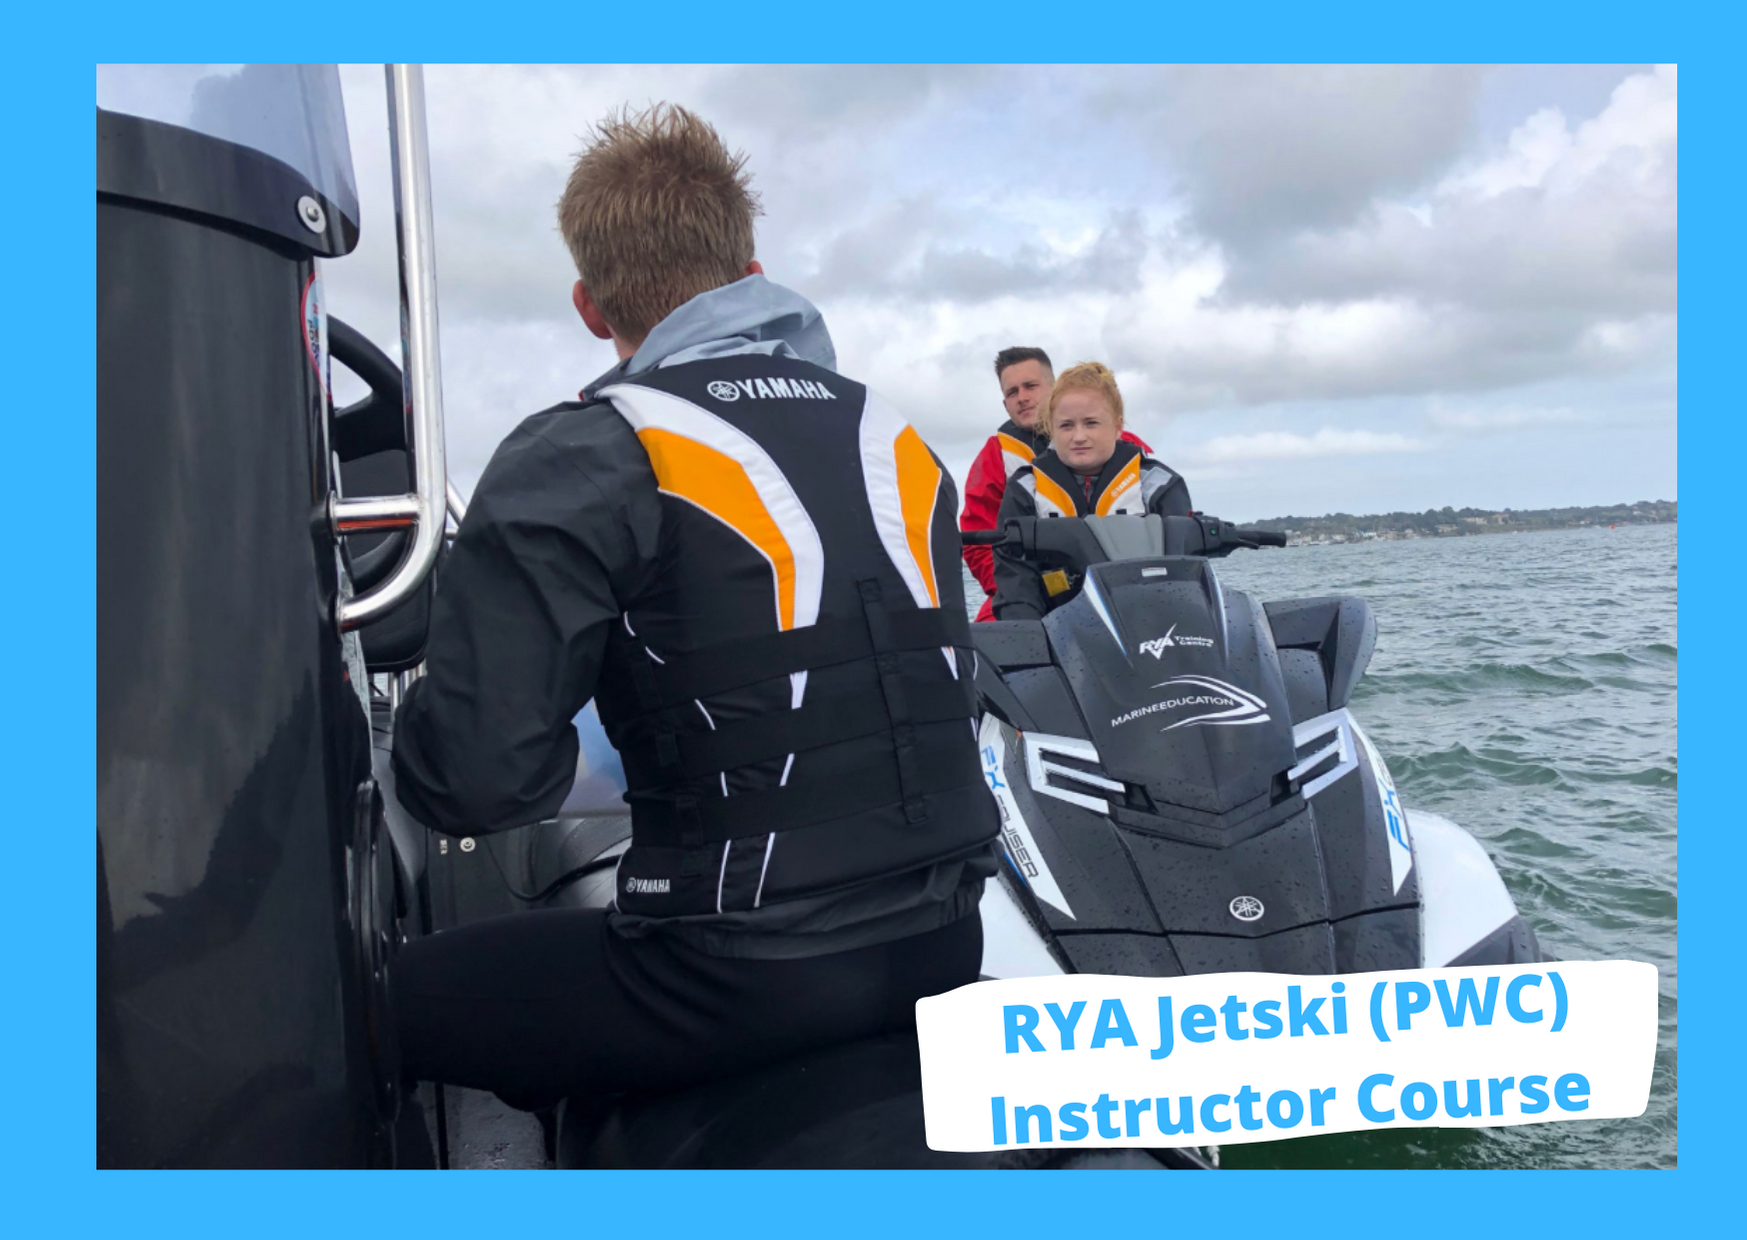 rya jetski pwc instructor course